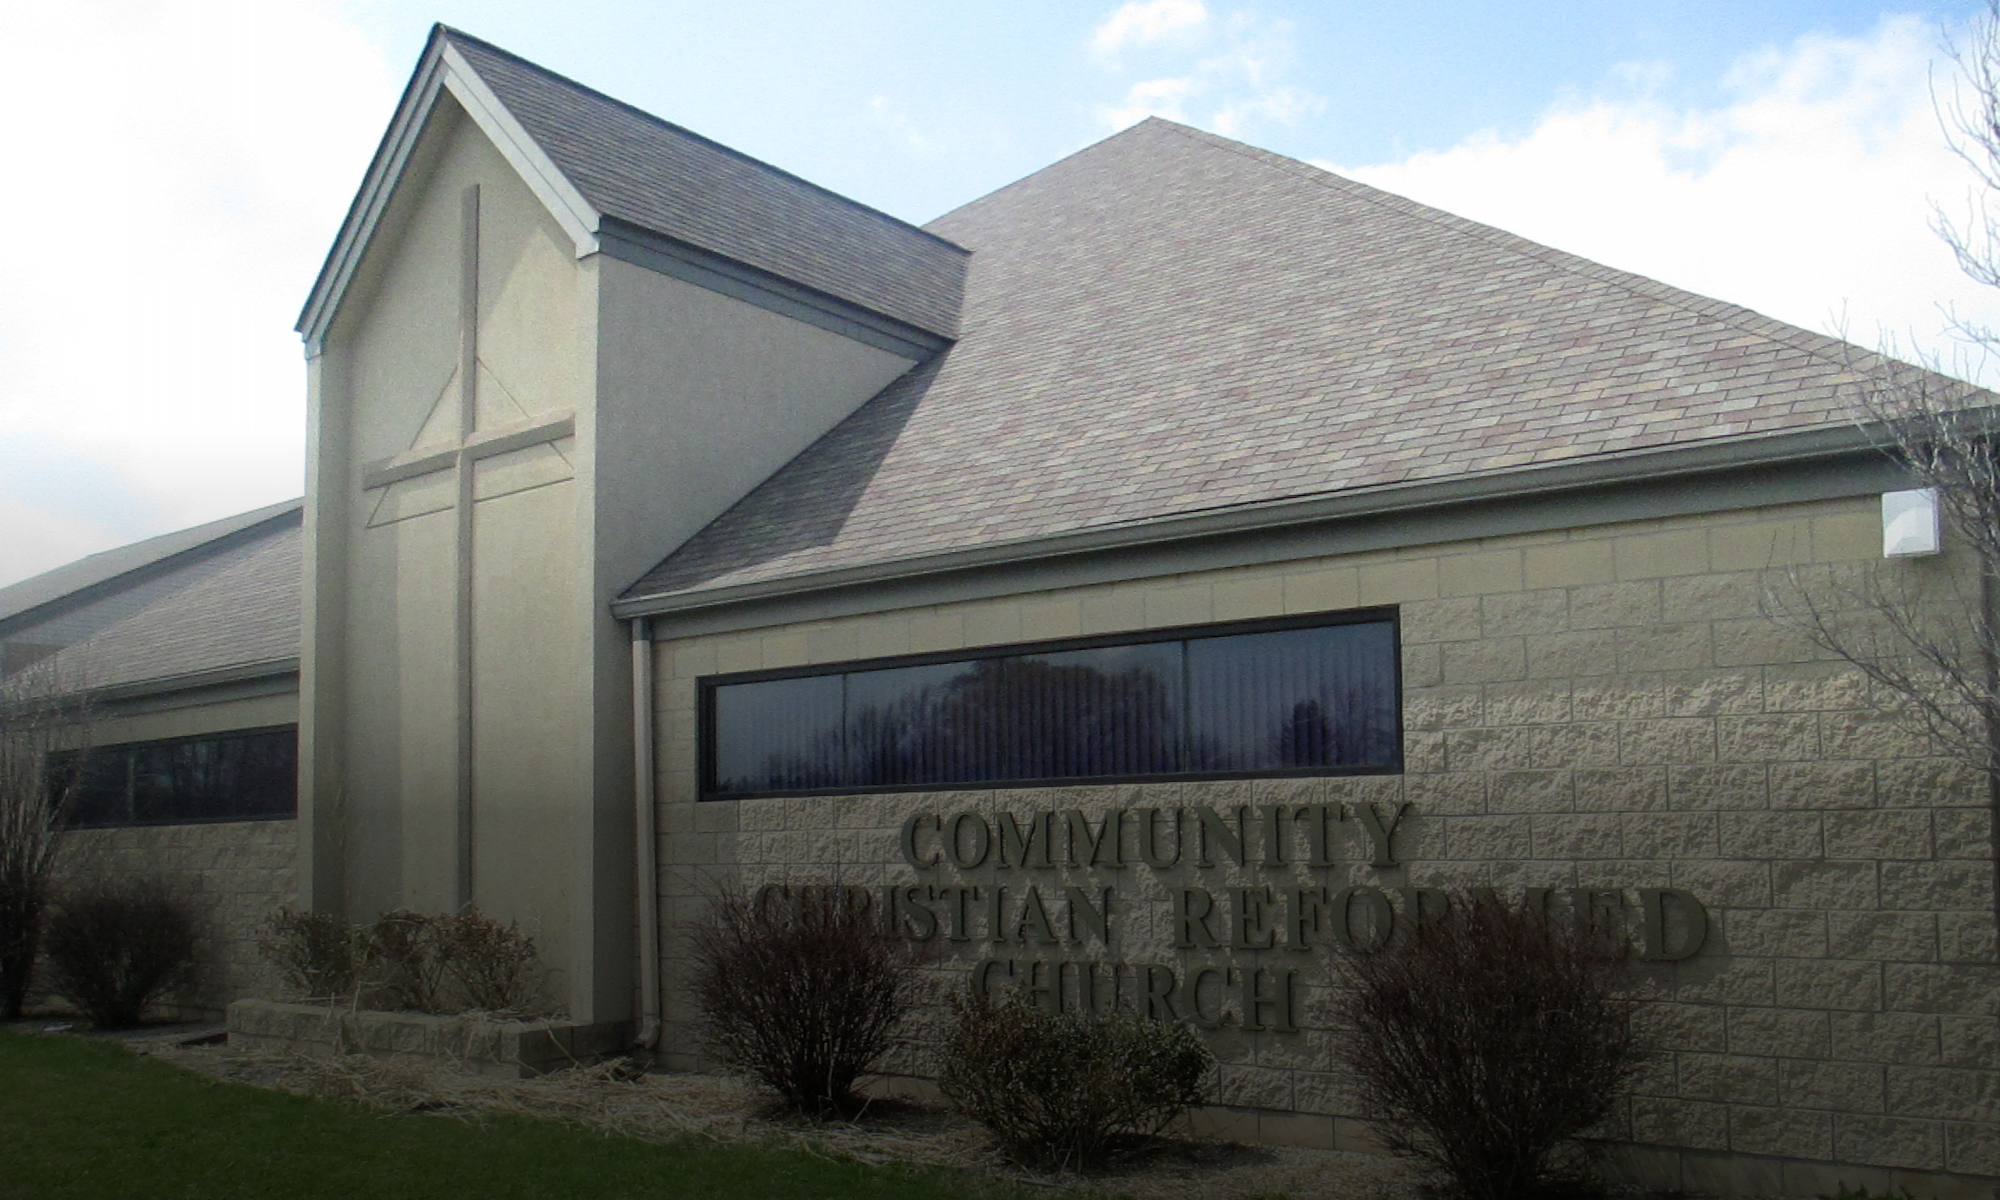 Saginaw Community Christian Reformed Church